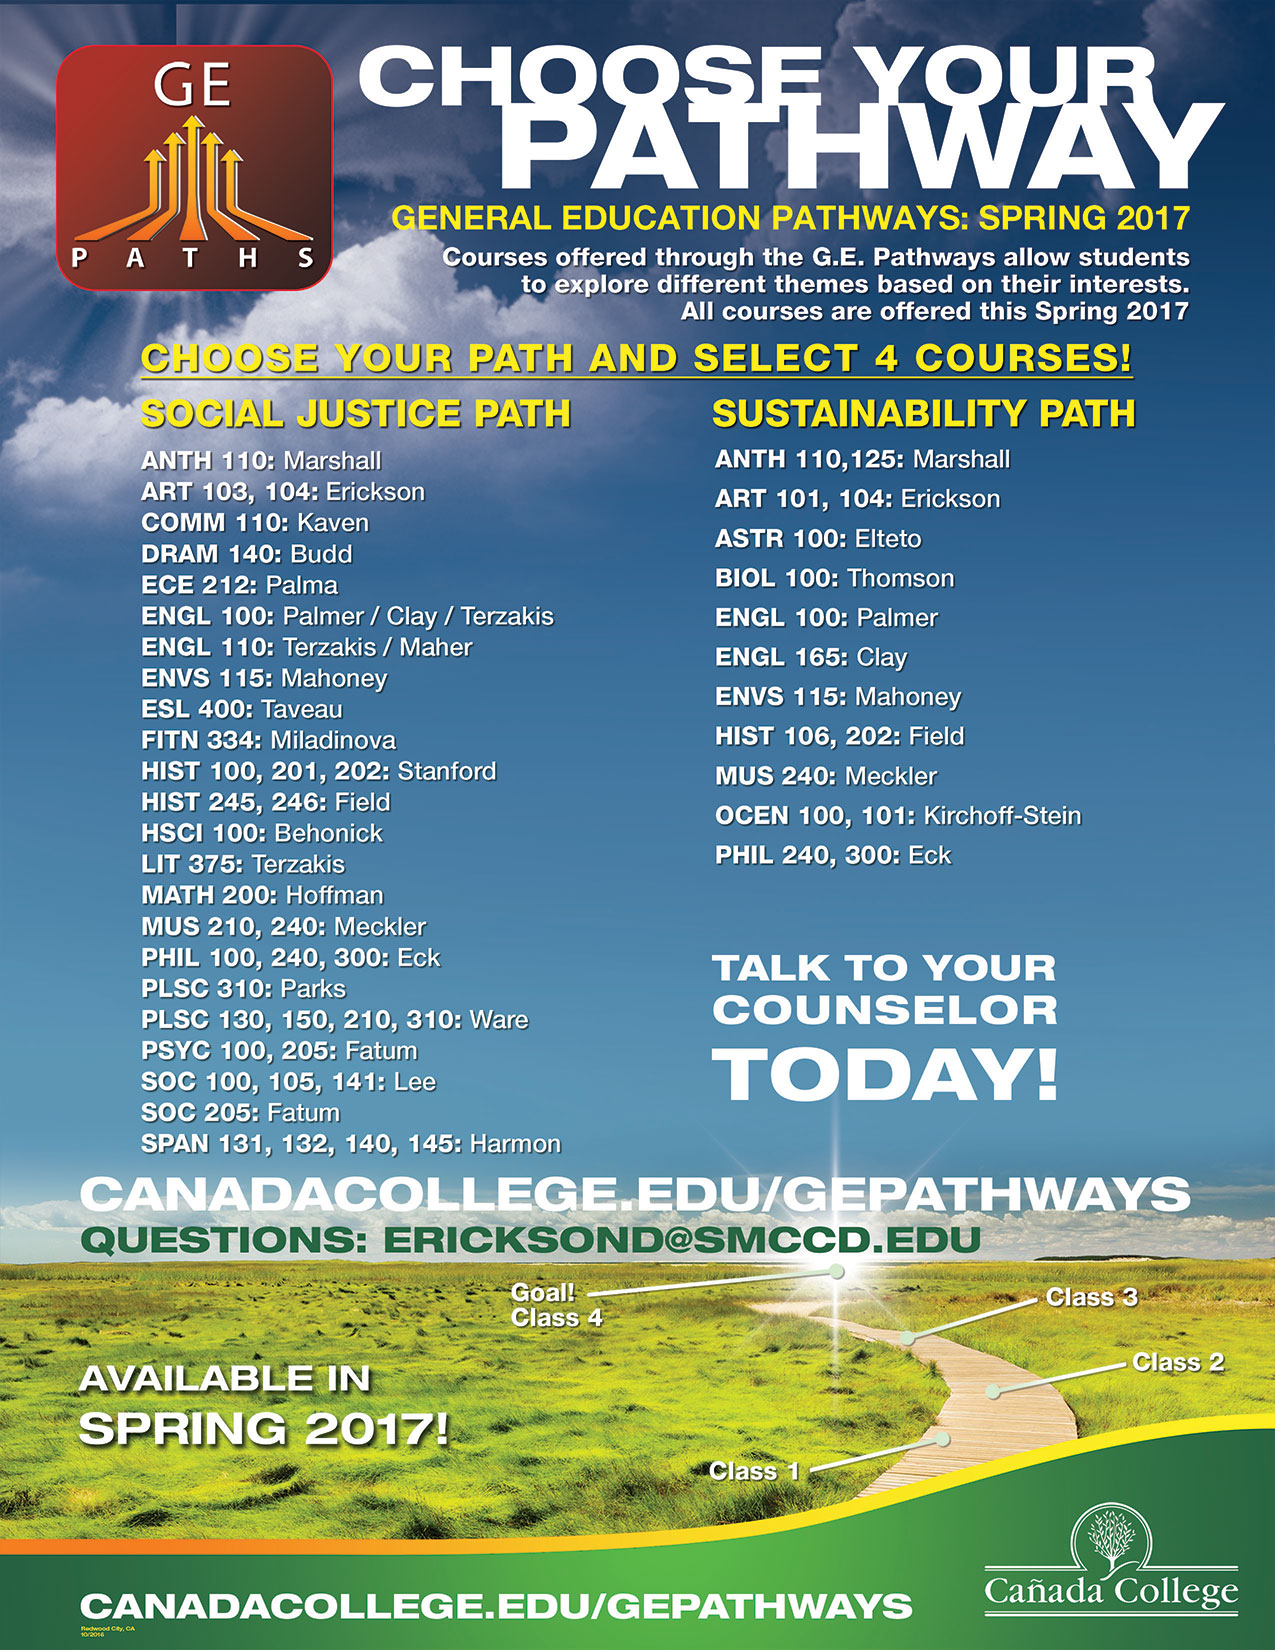 GE Pathways Poster for Fall 2016 Classes